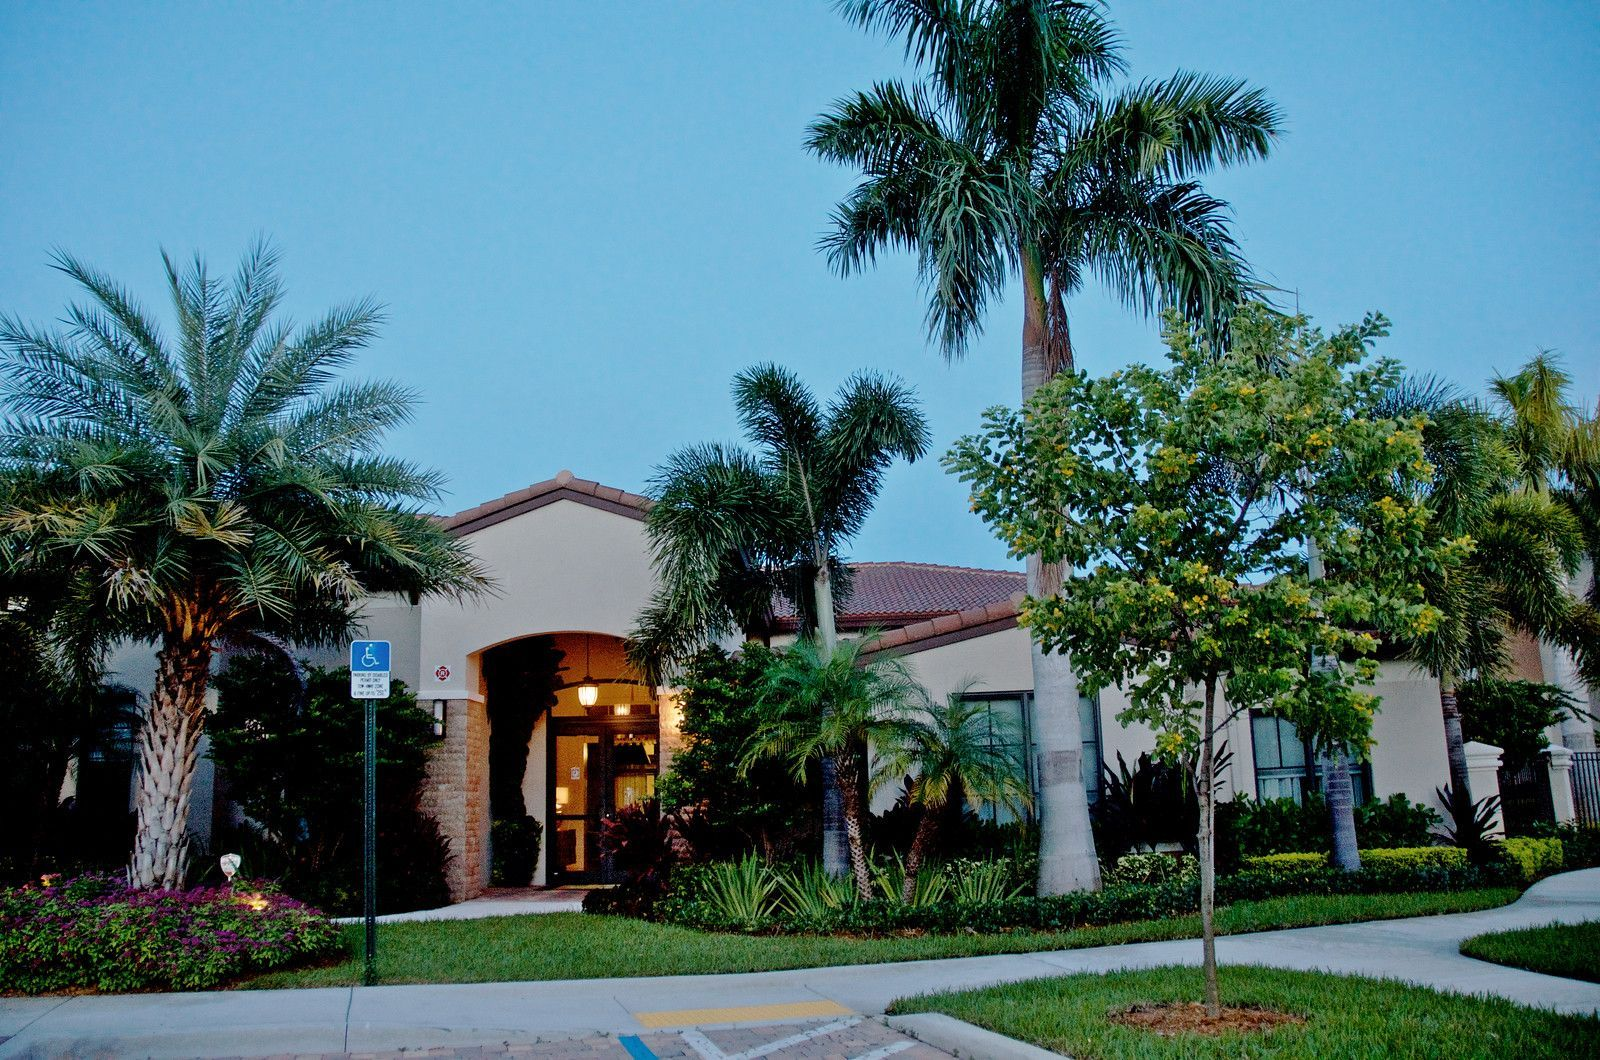 clubhouse front entrance with palm trees